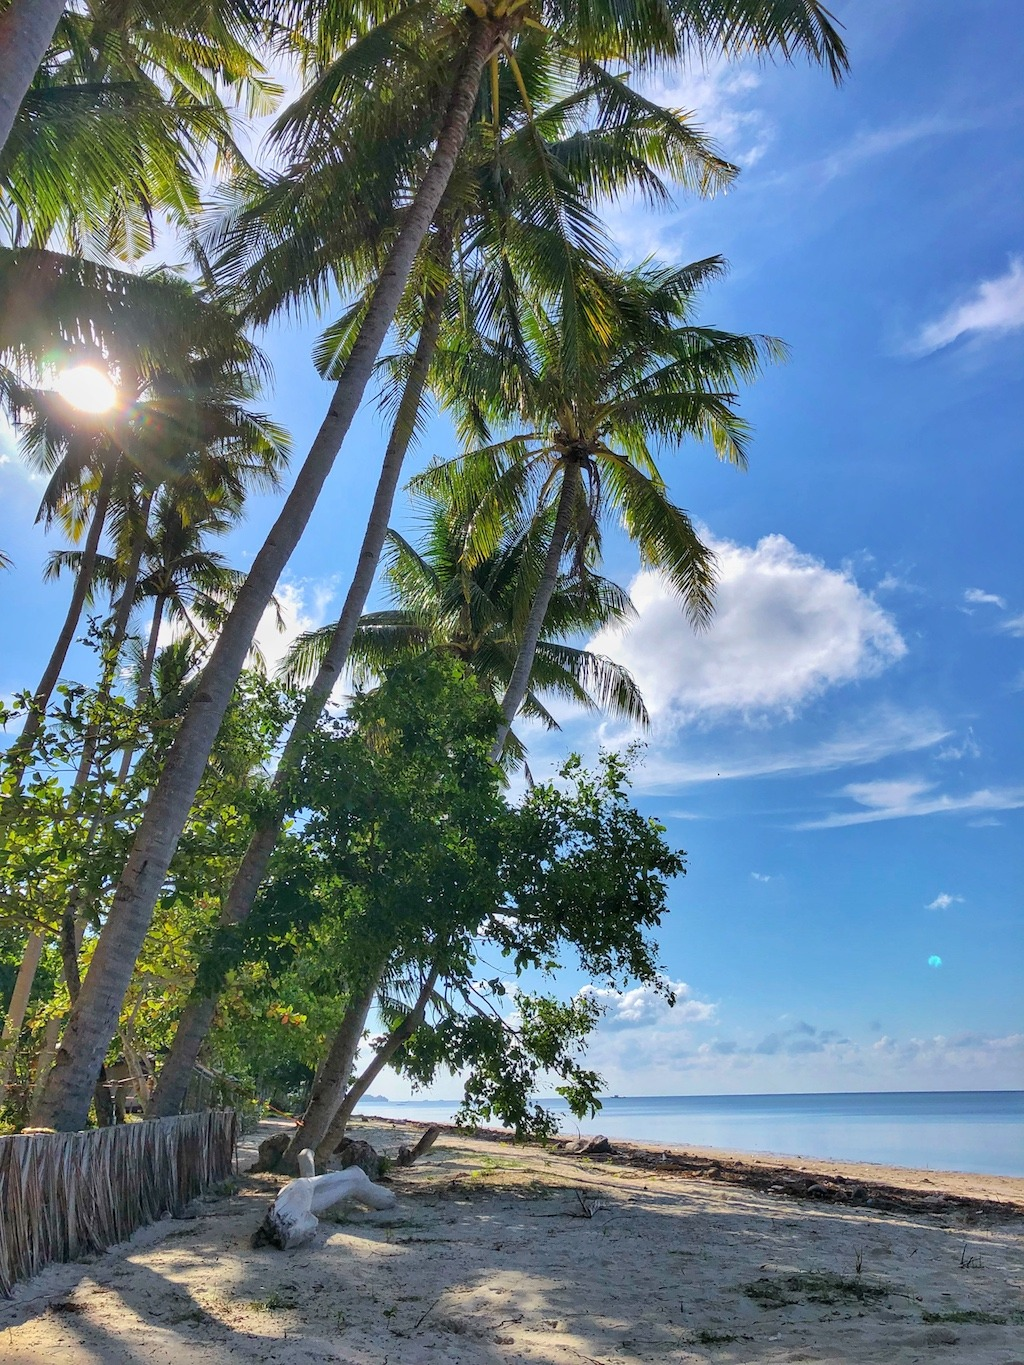 Where to stay when travelling to Siquijor – Glamping Siquijor Beach View